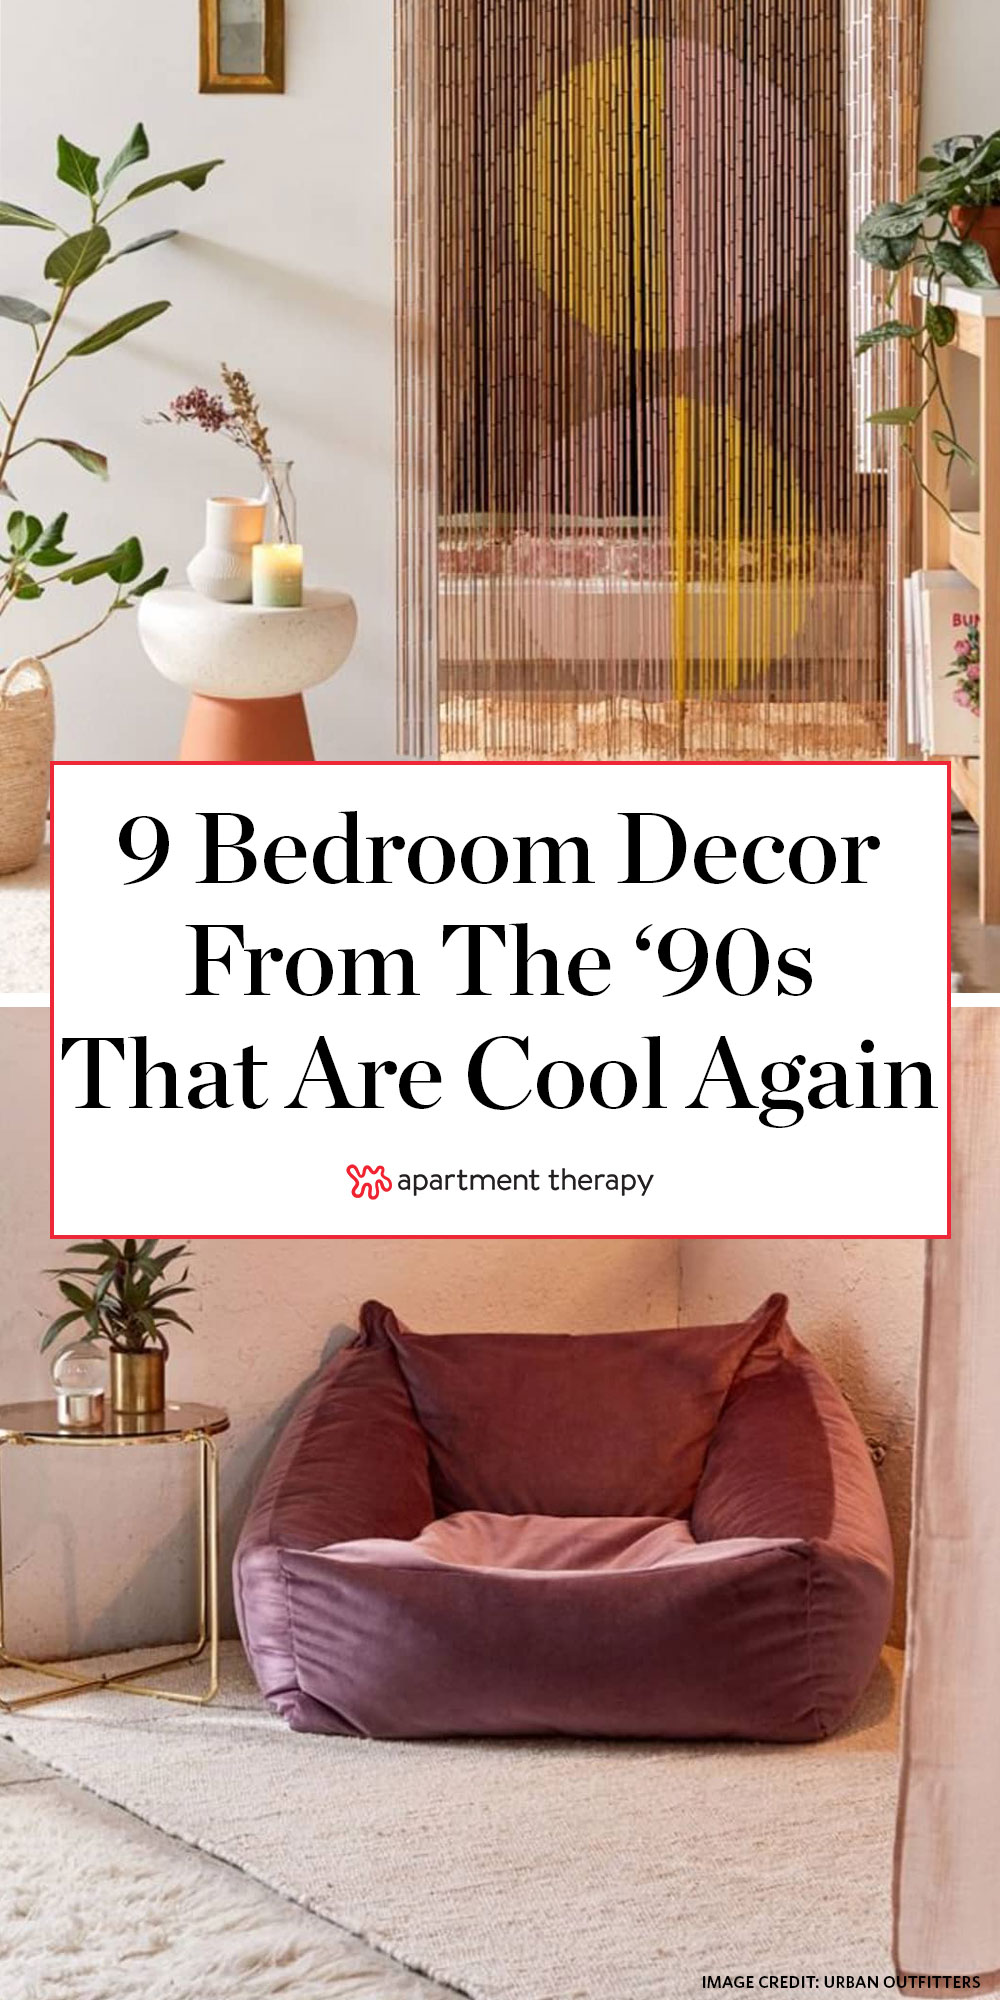 Top Teen Bedroom Decor Icons From The 90s That Are Trending Now Again Apartment Therapy